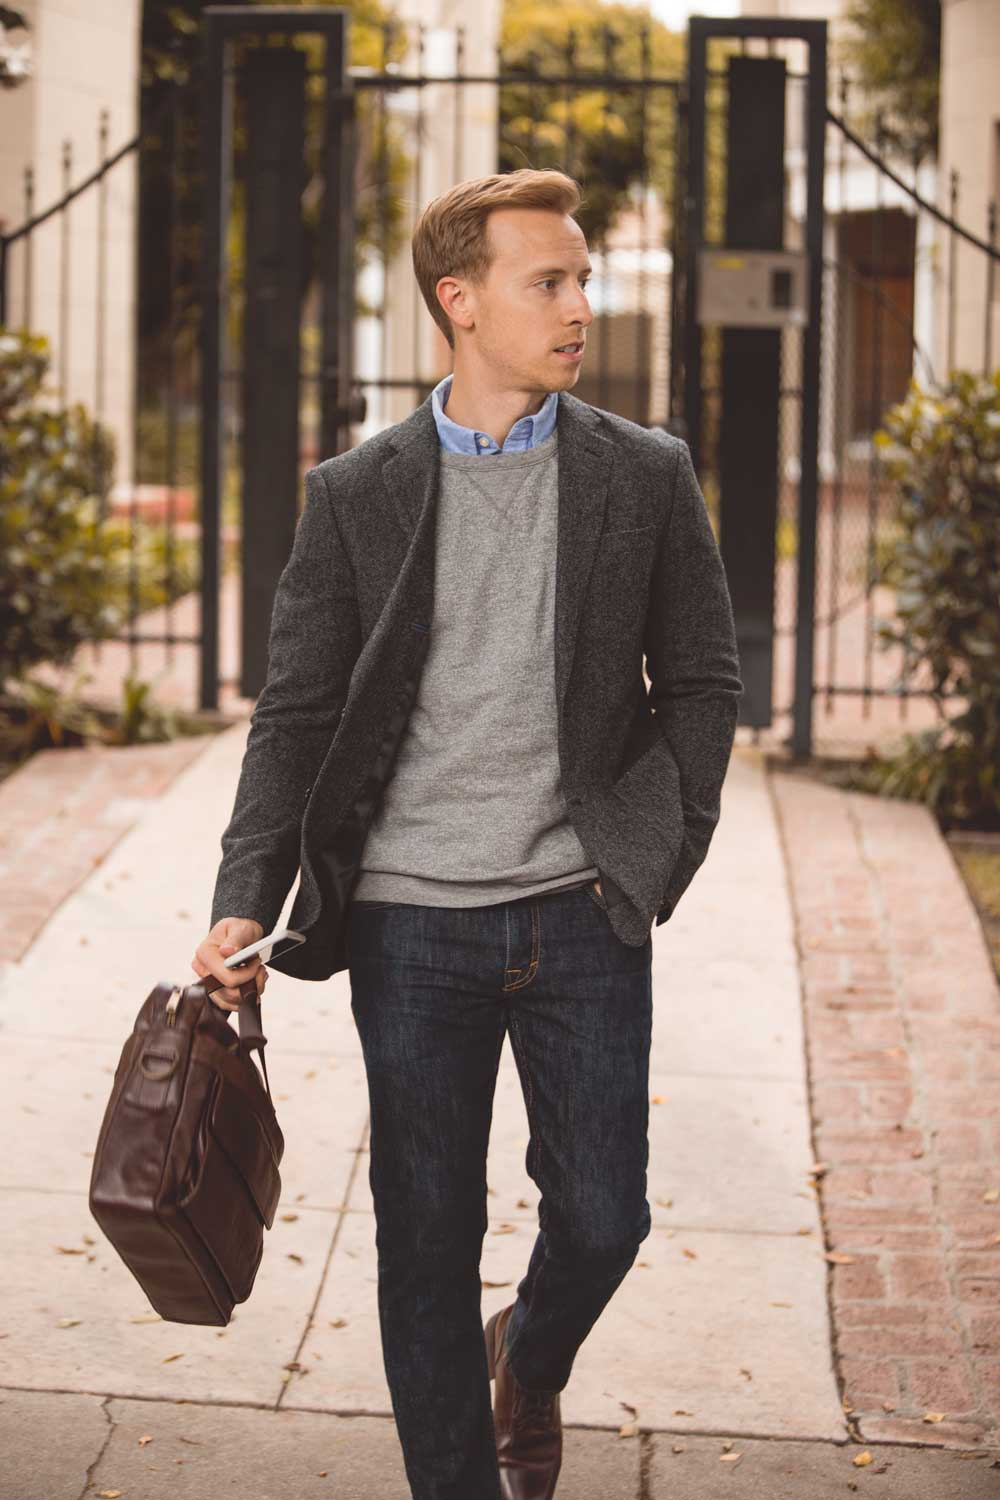 Live Action Getup: Sportcoat as casual outerwear